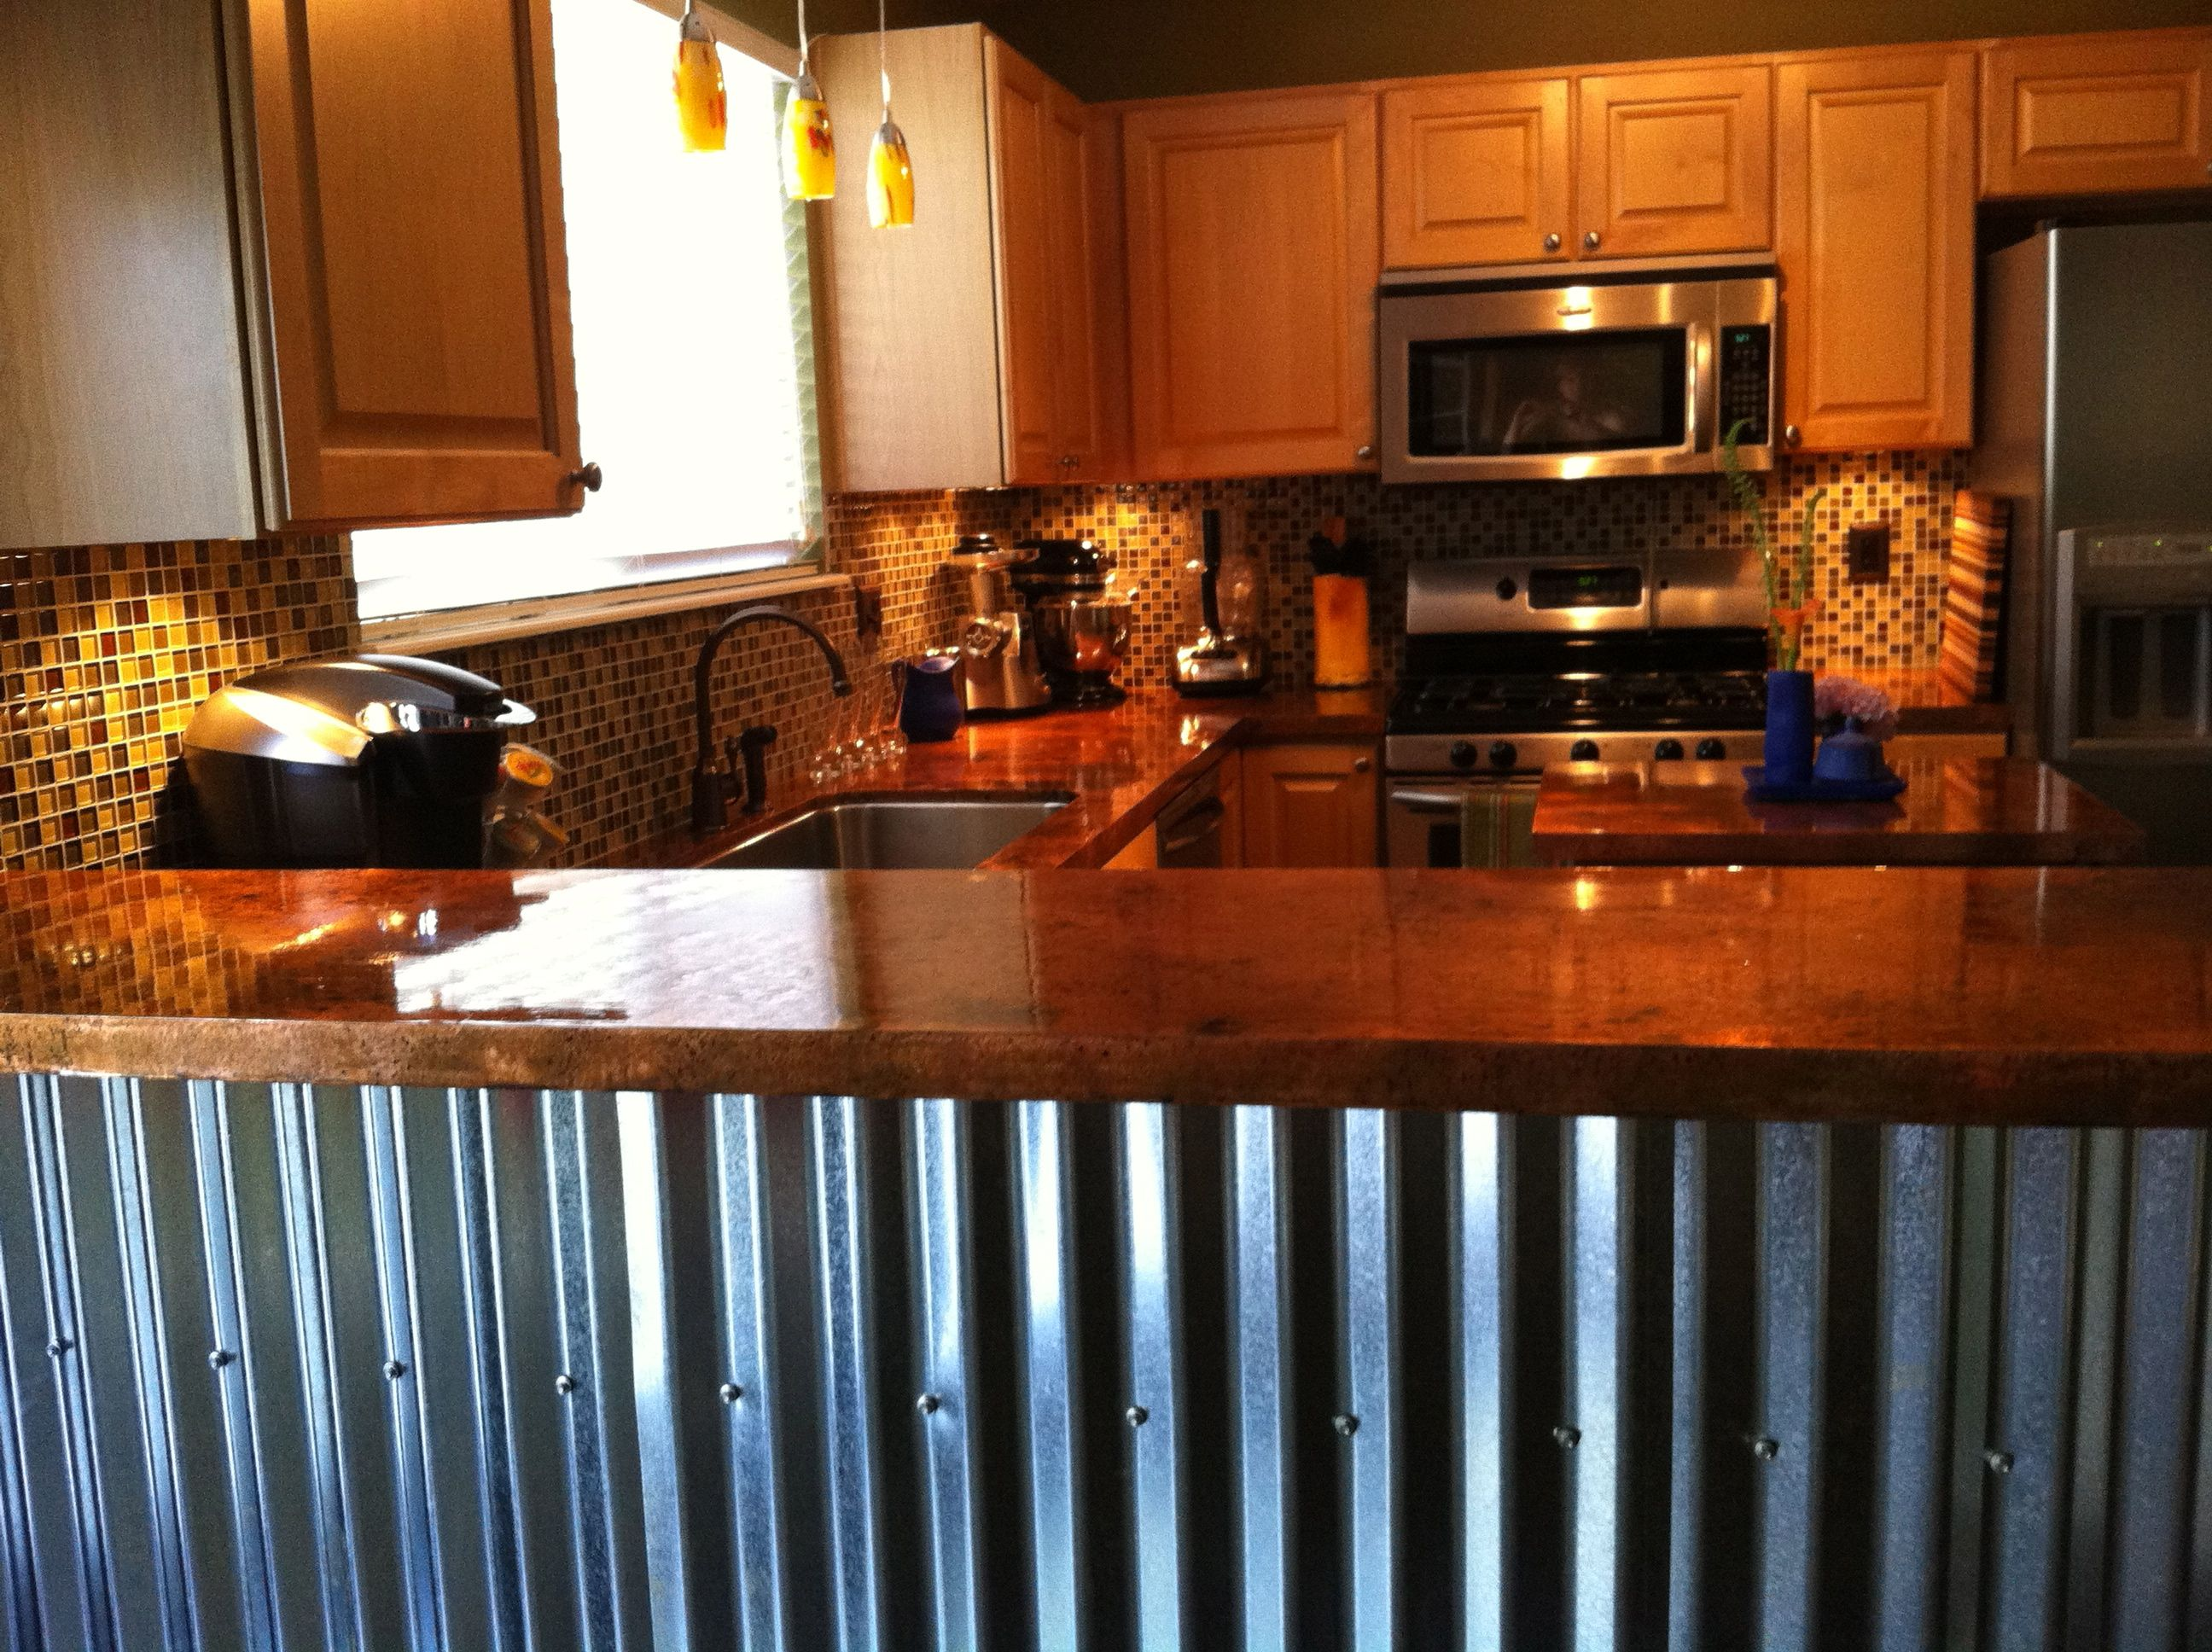 Pin By Beth Wright On My Home Projects Metal Homes Industrial Kitchen Design Sheet Metal Backsplash